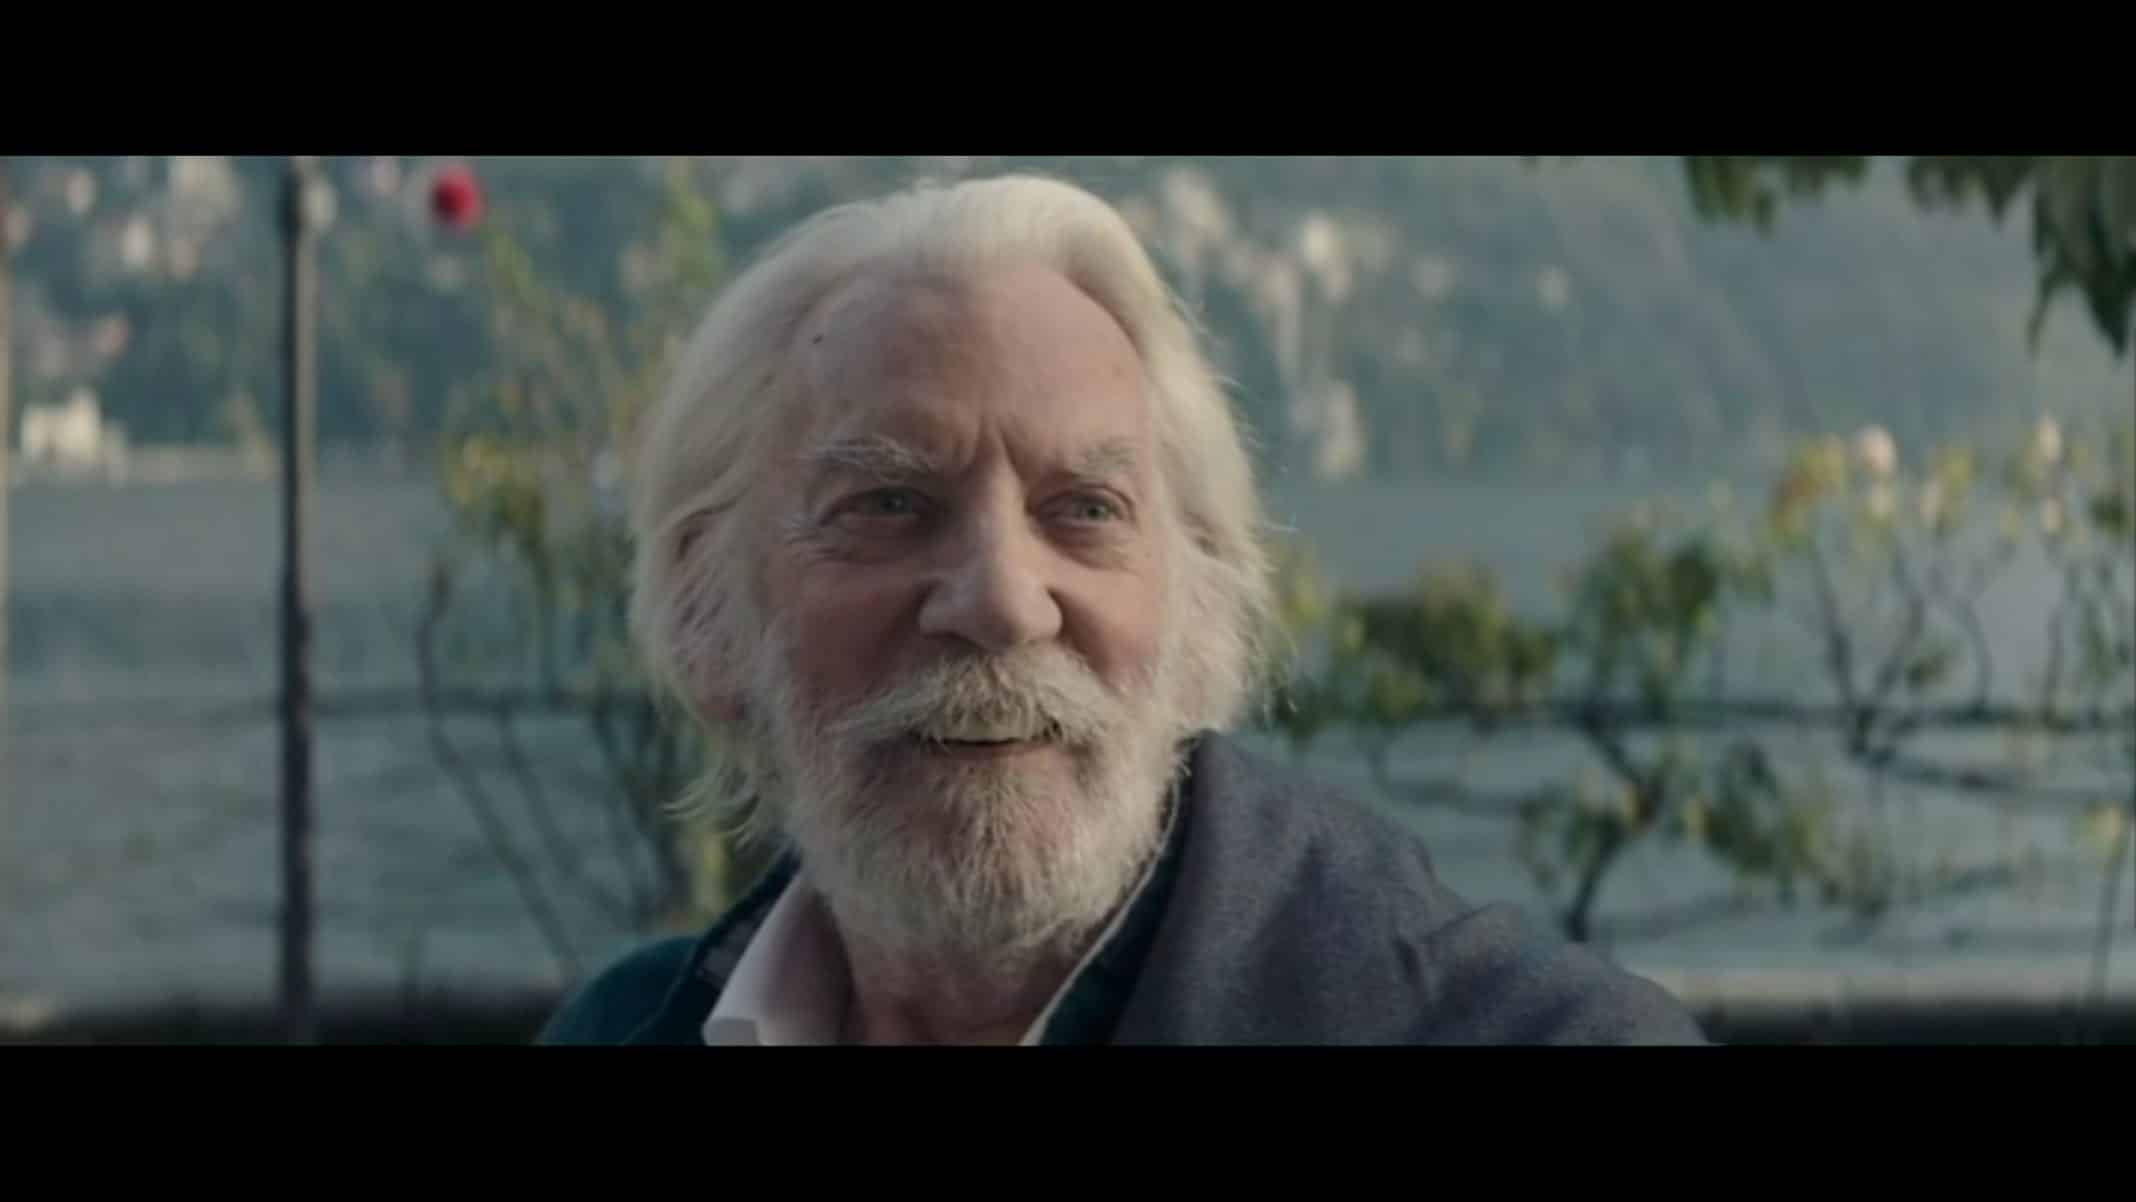 Jerome (Donald Sutherland) smiling